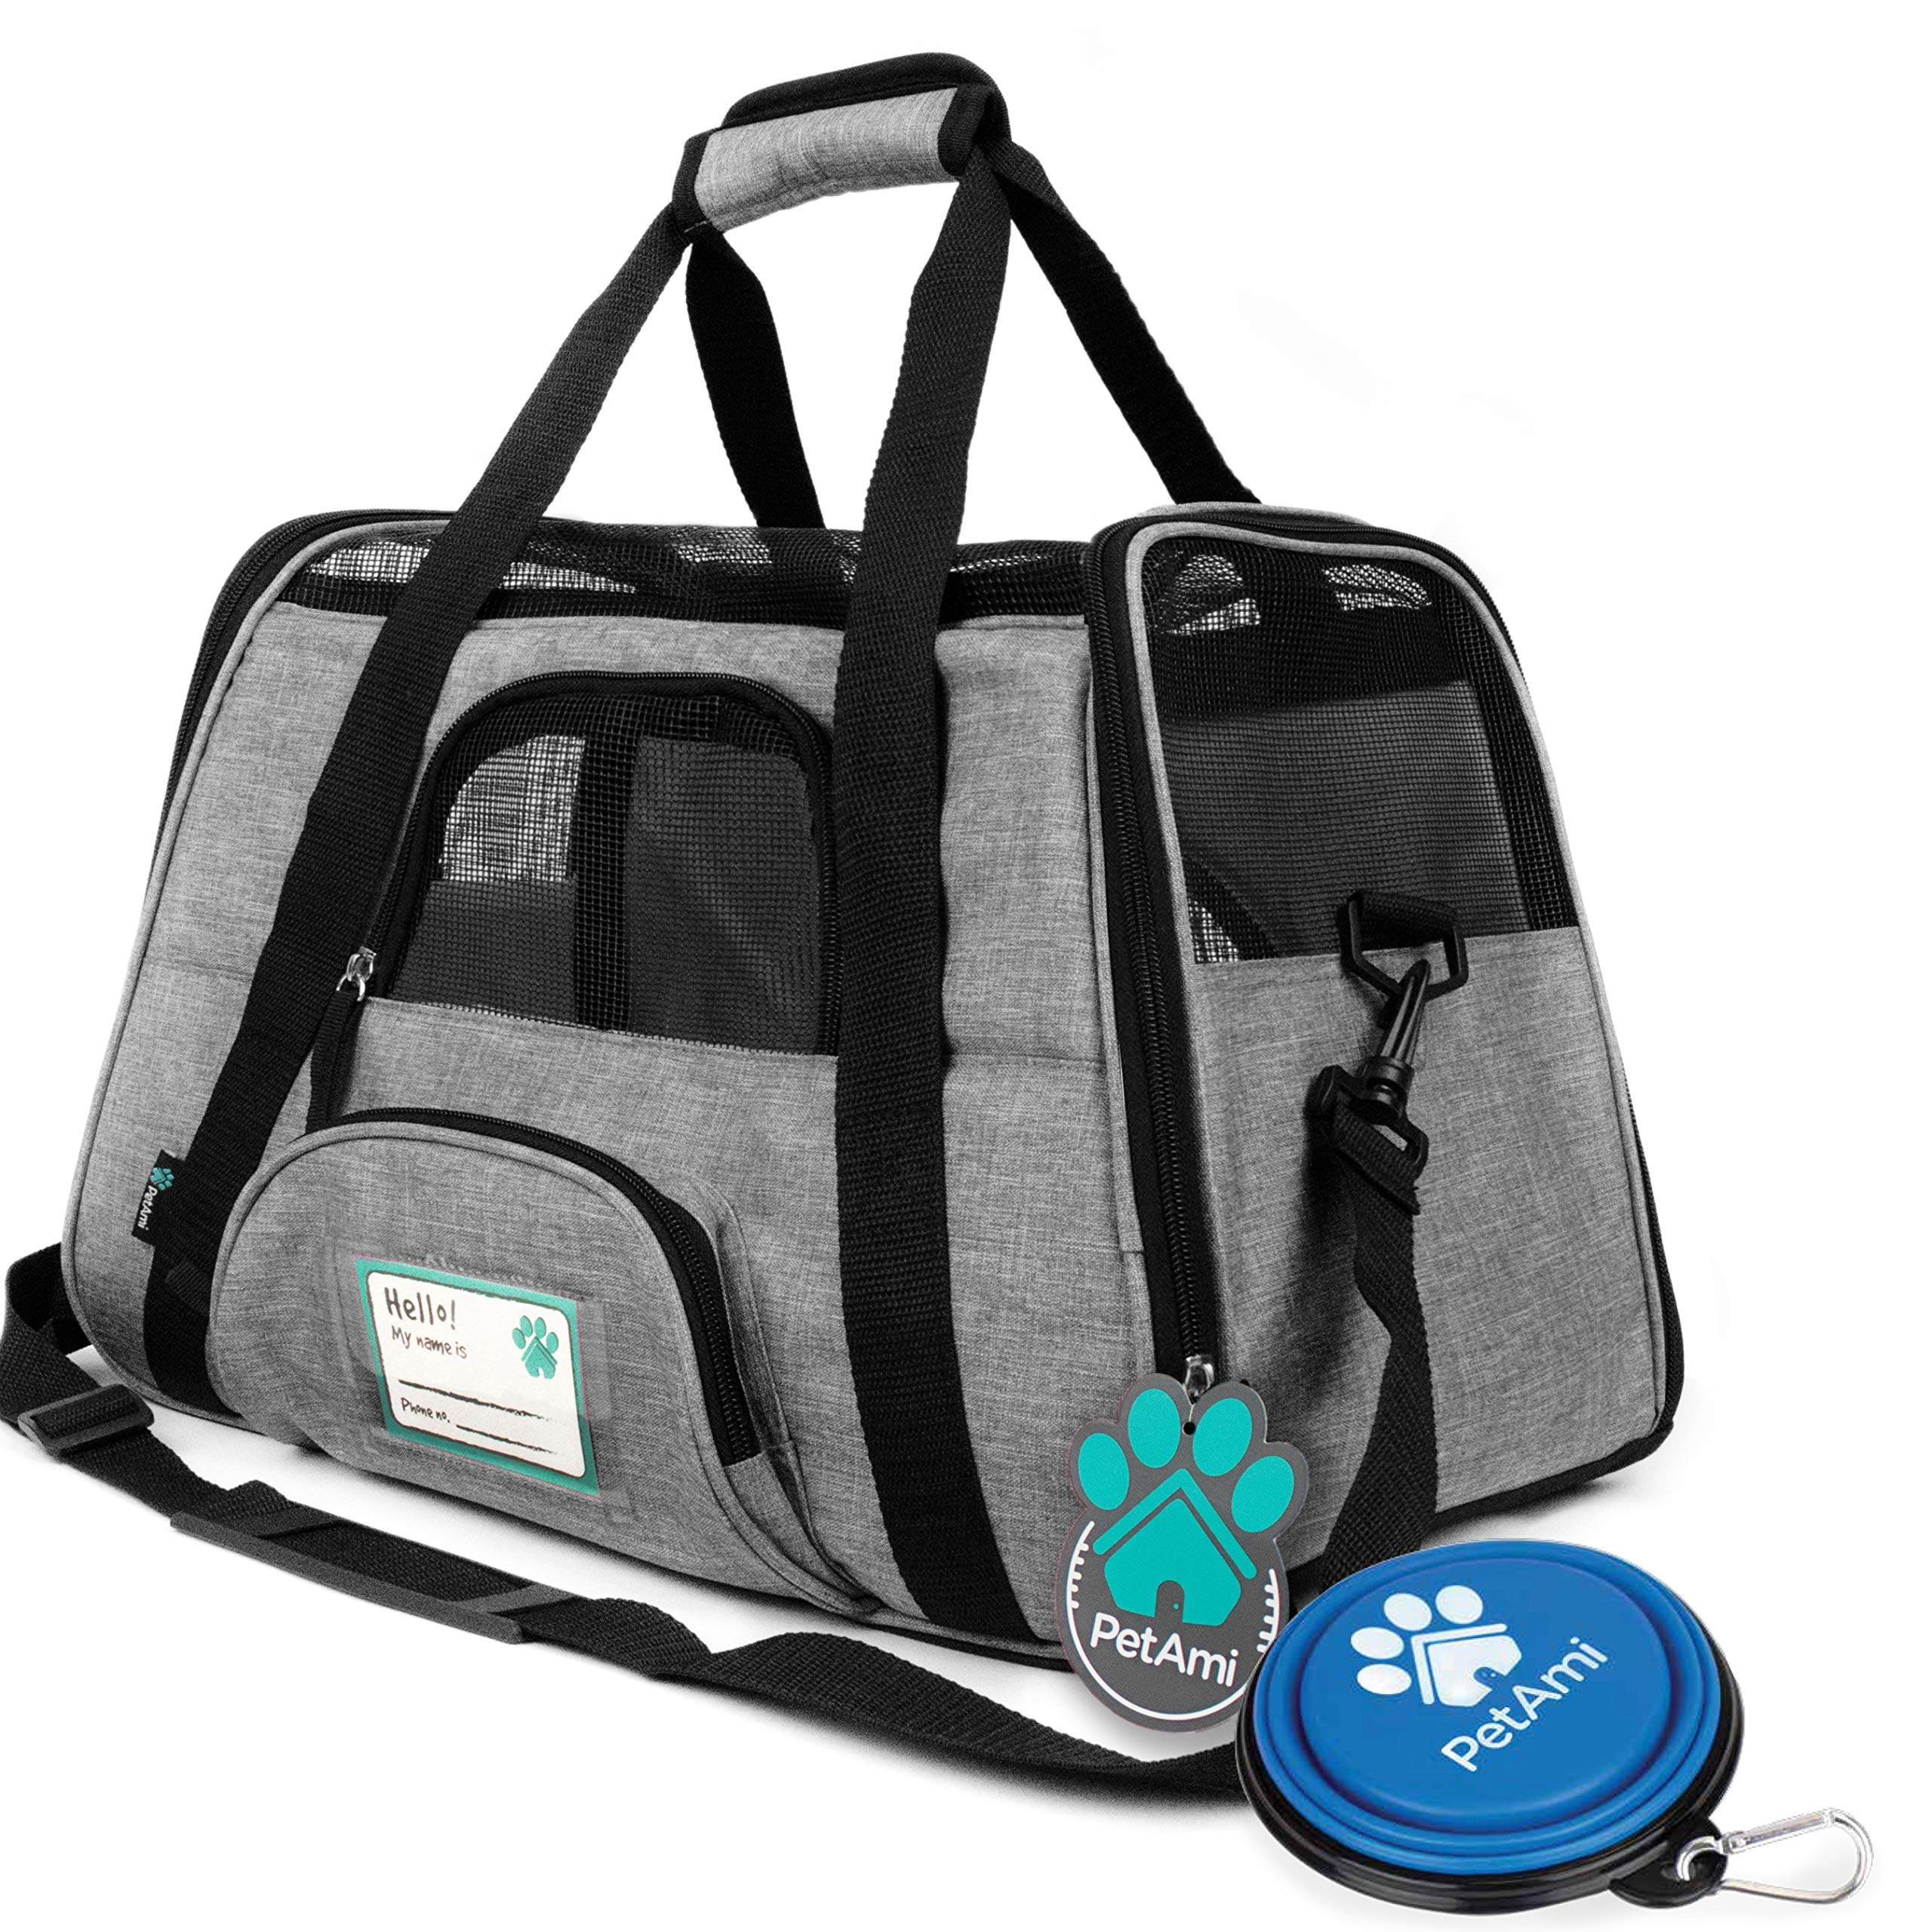 PetAmi Premium Airline Approved Soft-Sided Pet Travel Carrier | Ventilated, Comfortable Design with Safety Features | Ideal for Small to Medium Sized Cats, Dogs, and Pets (Large, Heather Gray) by PetAmi